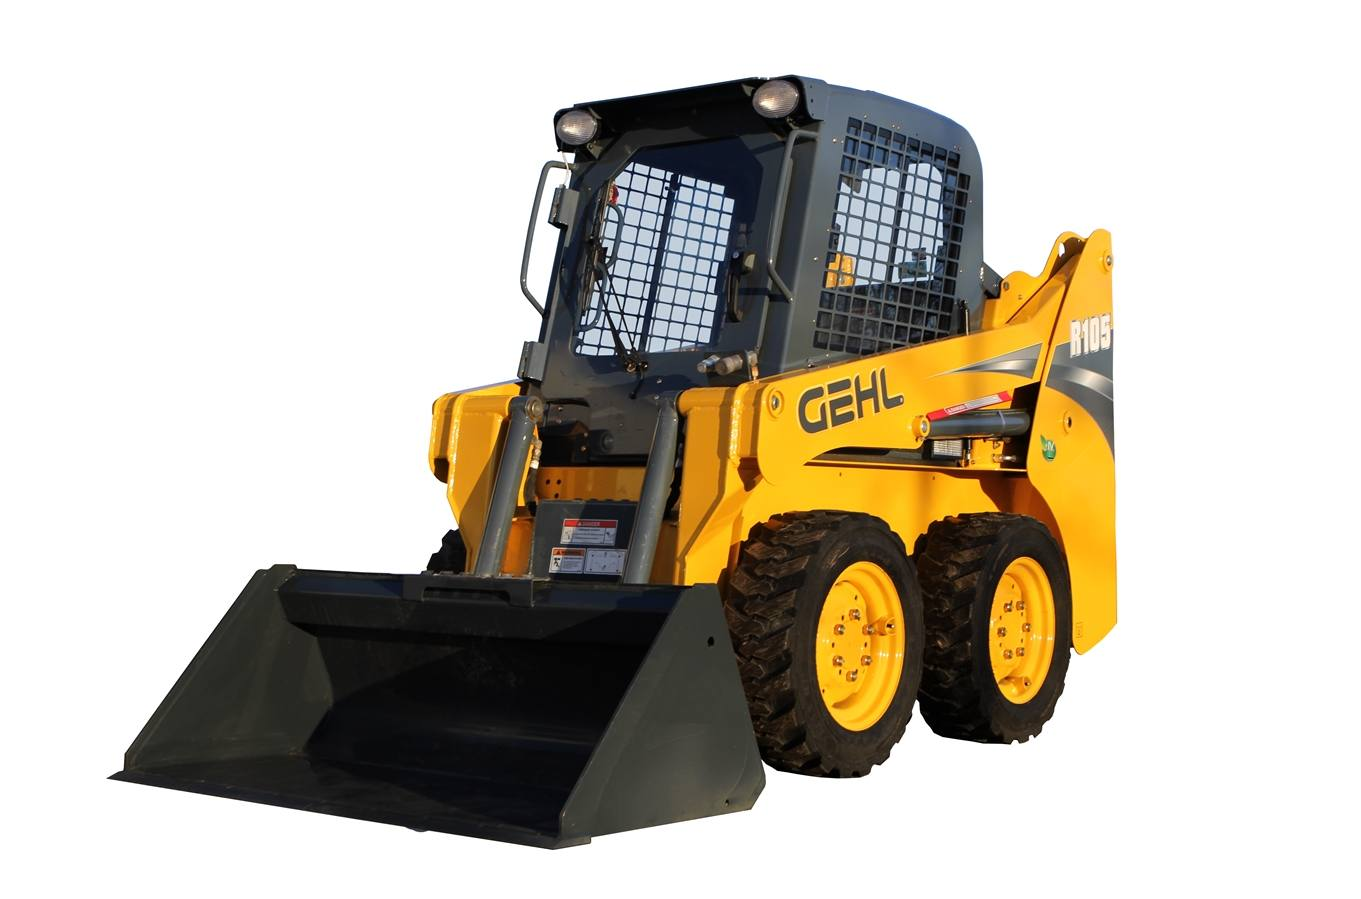 2018 Gehl R105 Skid Loader for sale in Harlan, IA  Nelson Farm